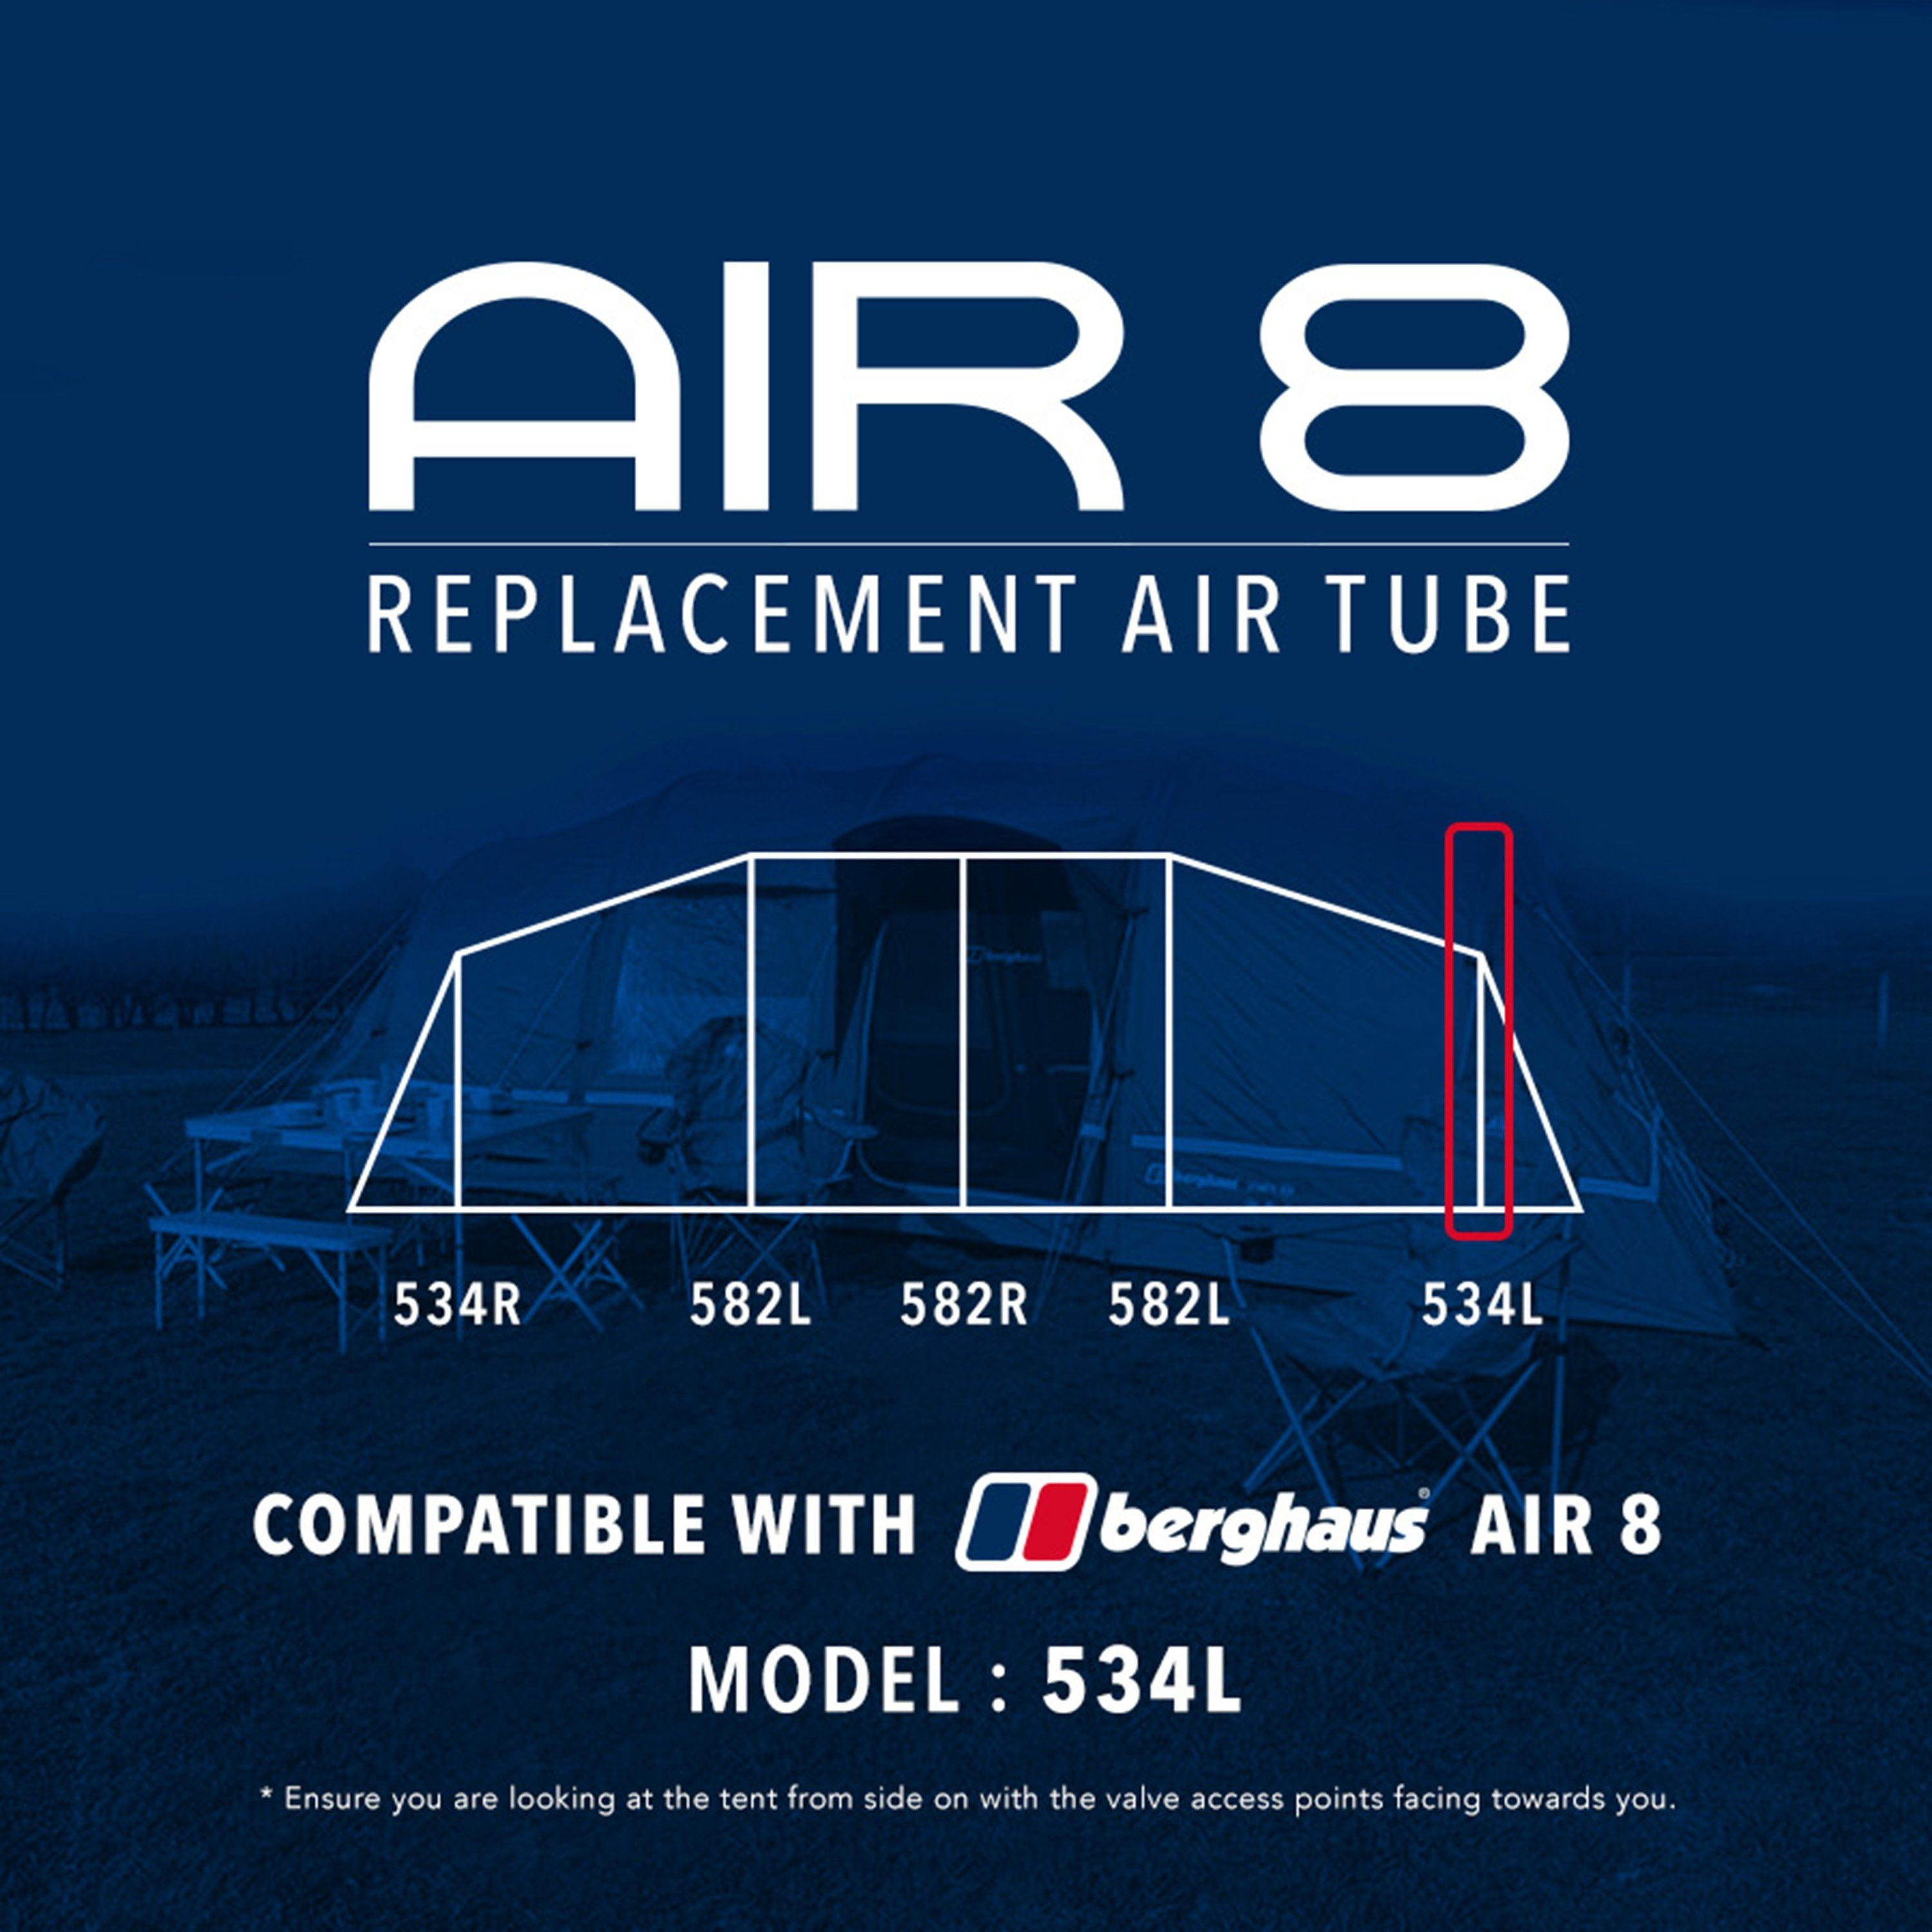 EUROHIKE Air 8 Tent Replacement Air Tube - 534L